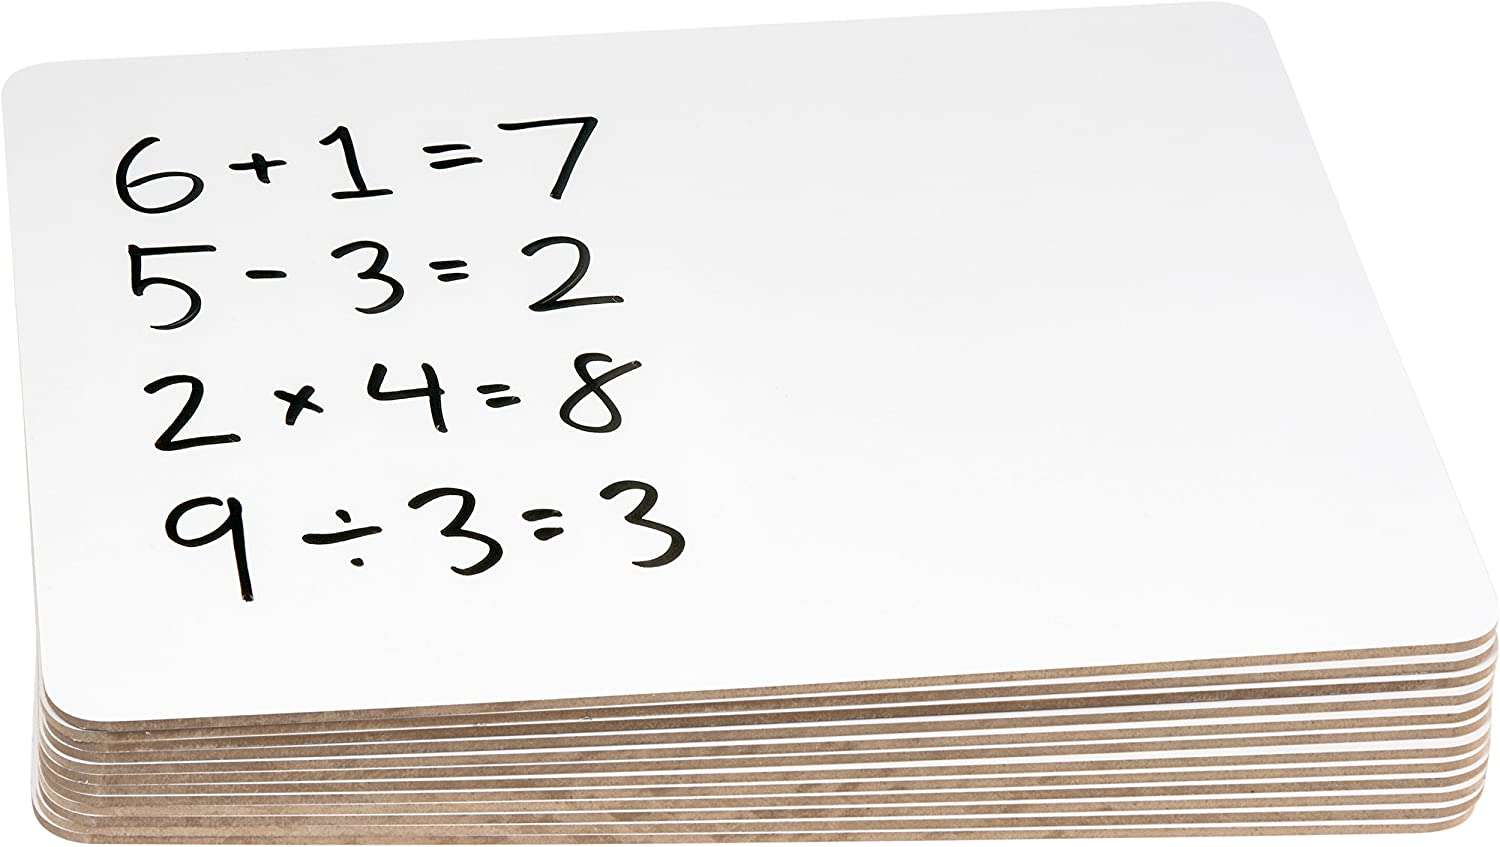 Stack of dry-erase whiteboards with math problems written on them.